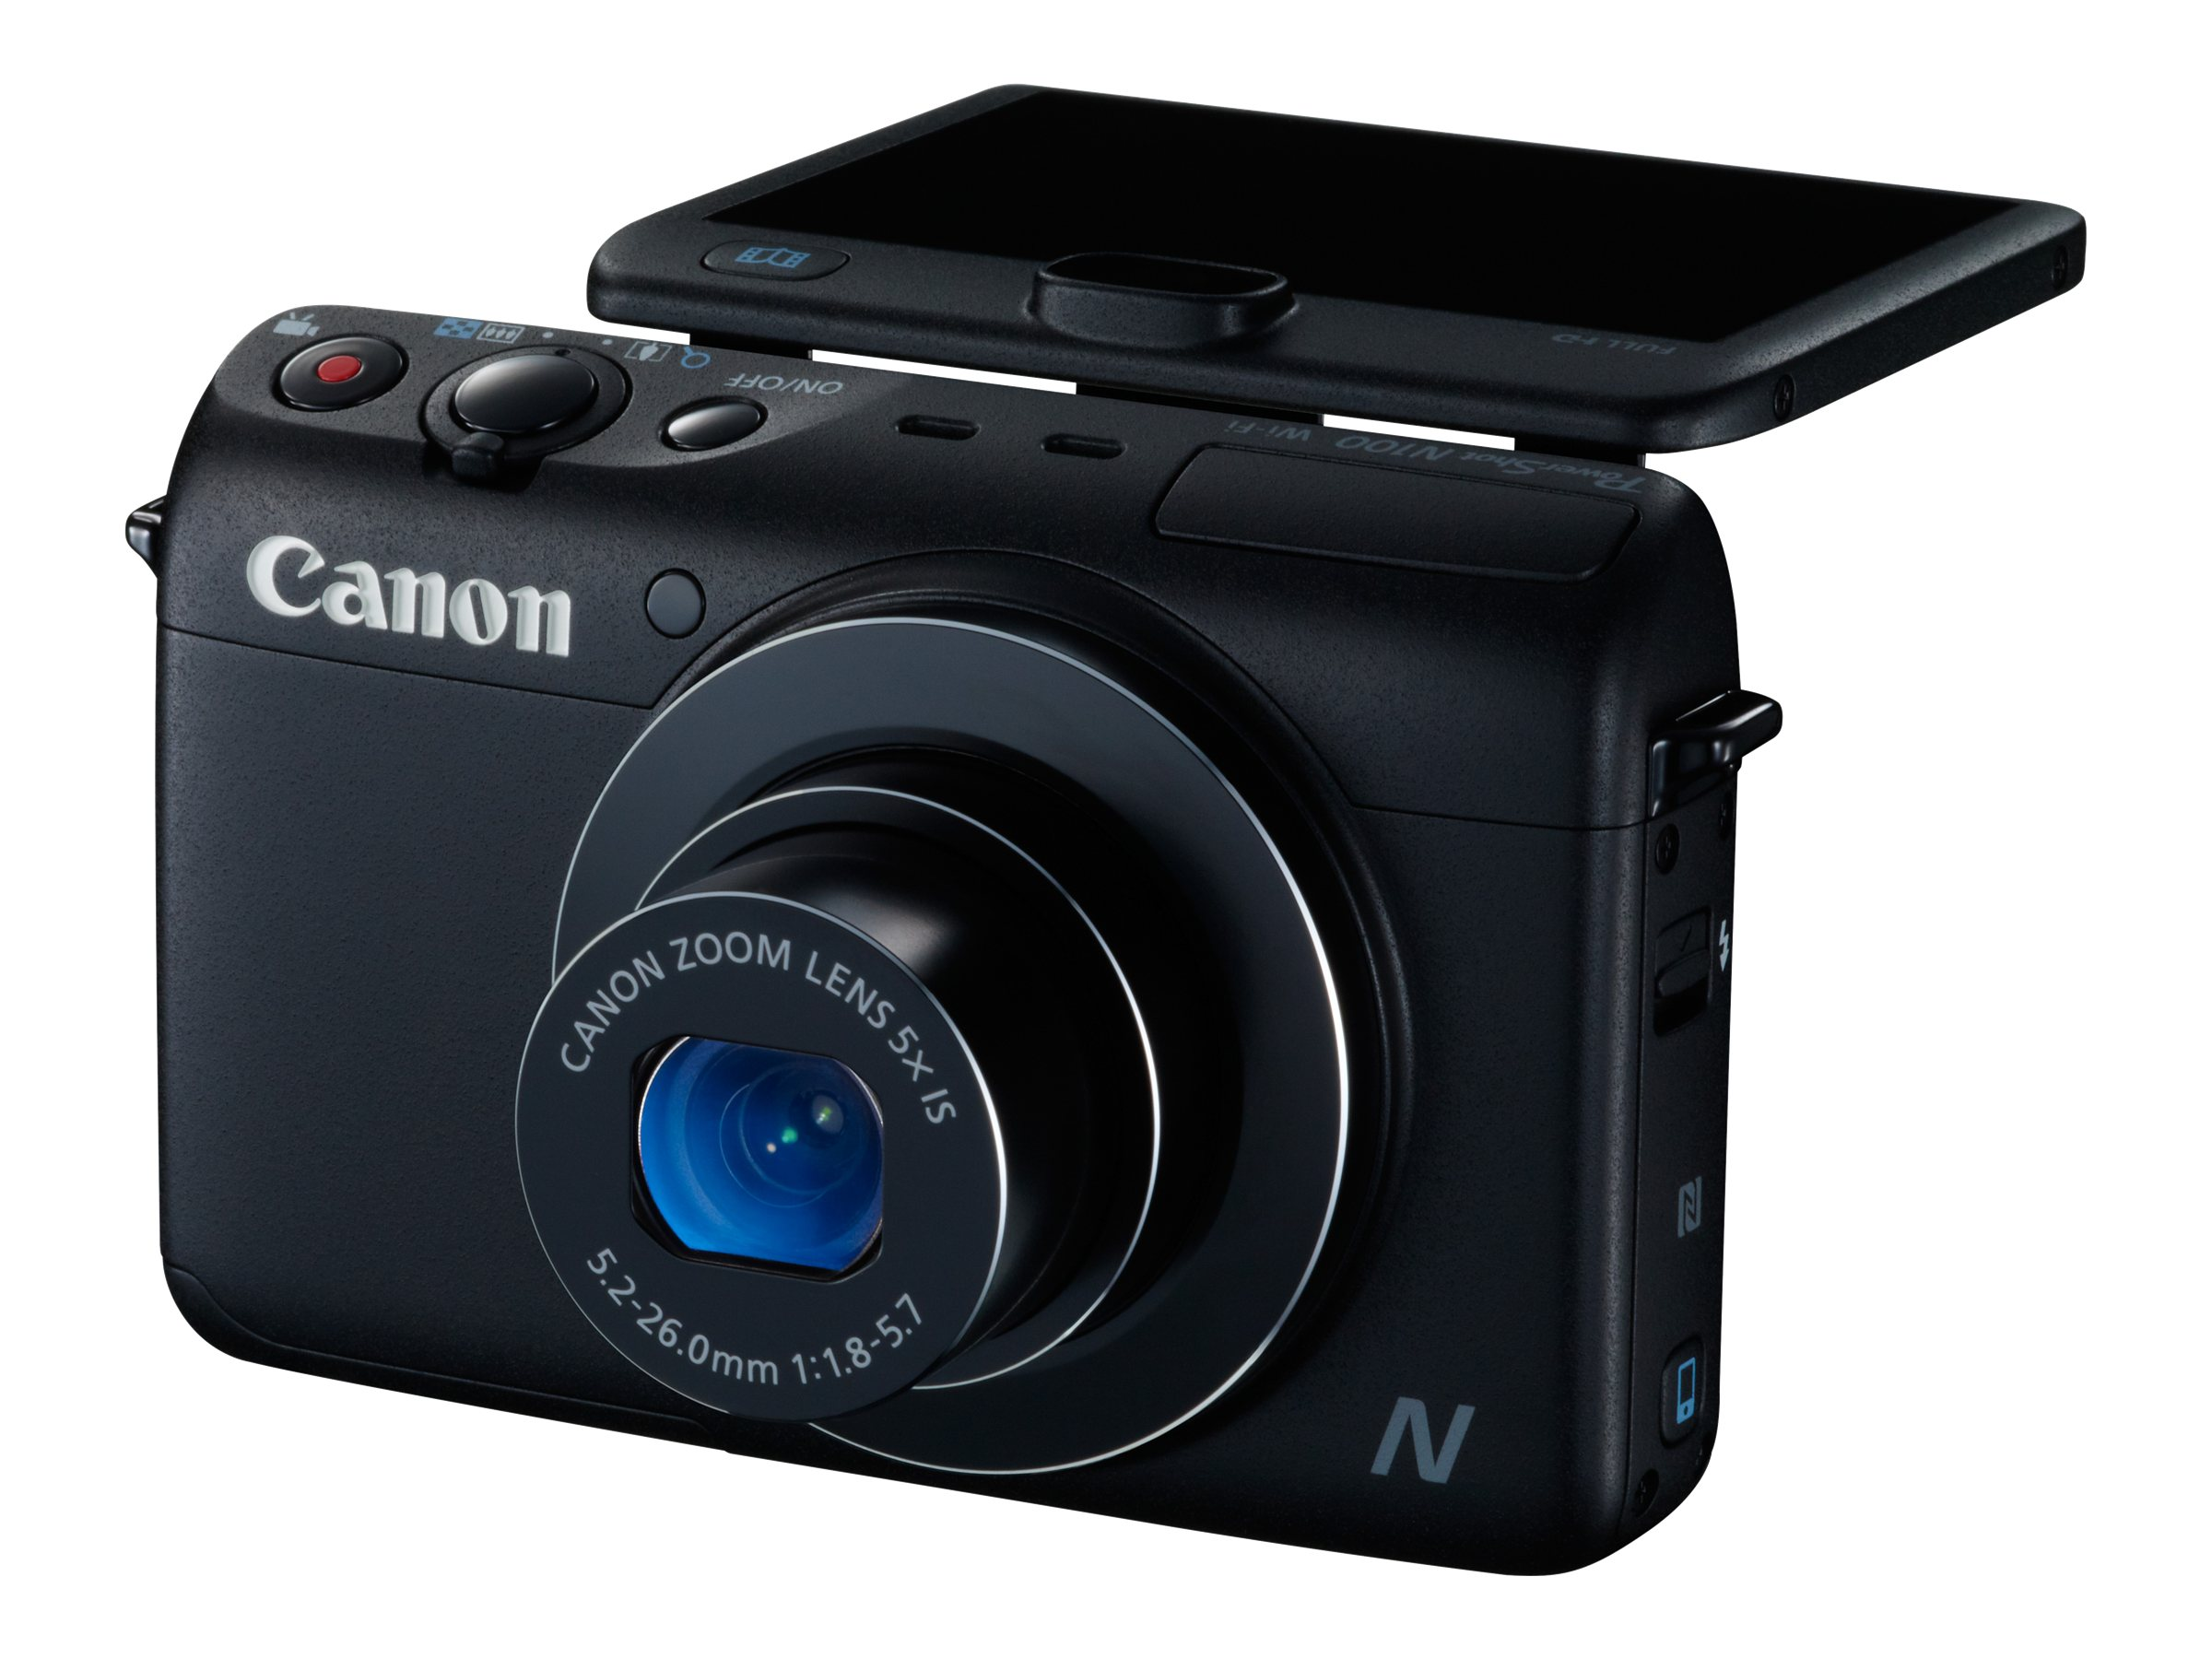 Canon PowerShot N100 Digital Camera, Black, 9168B001